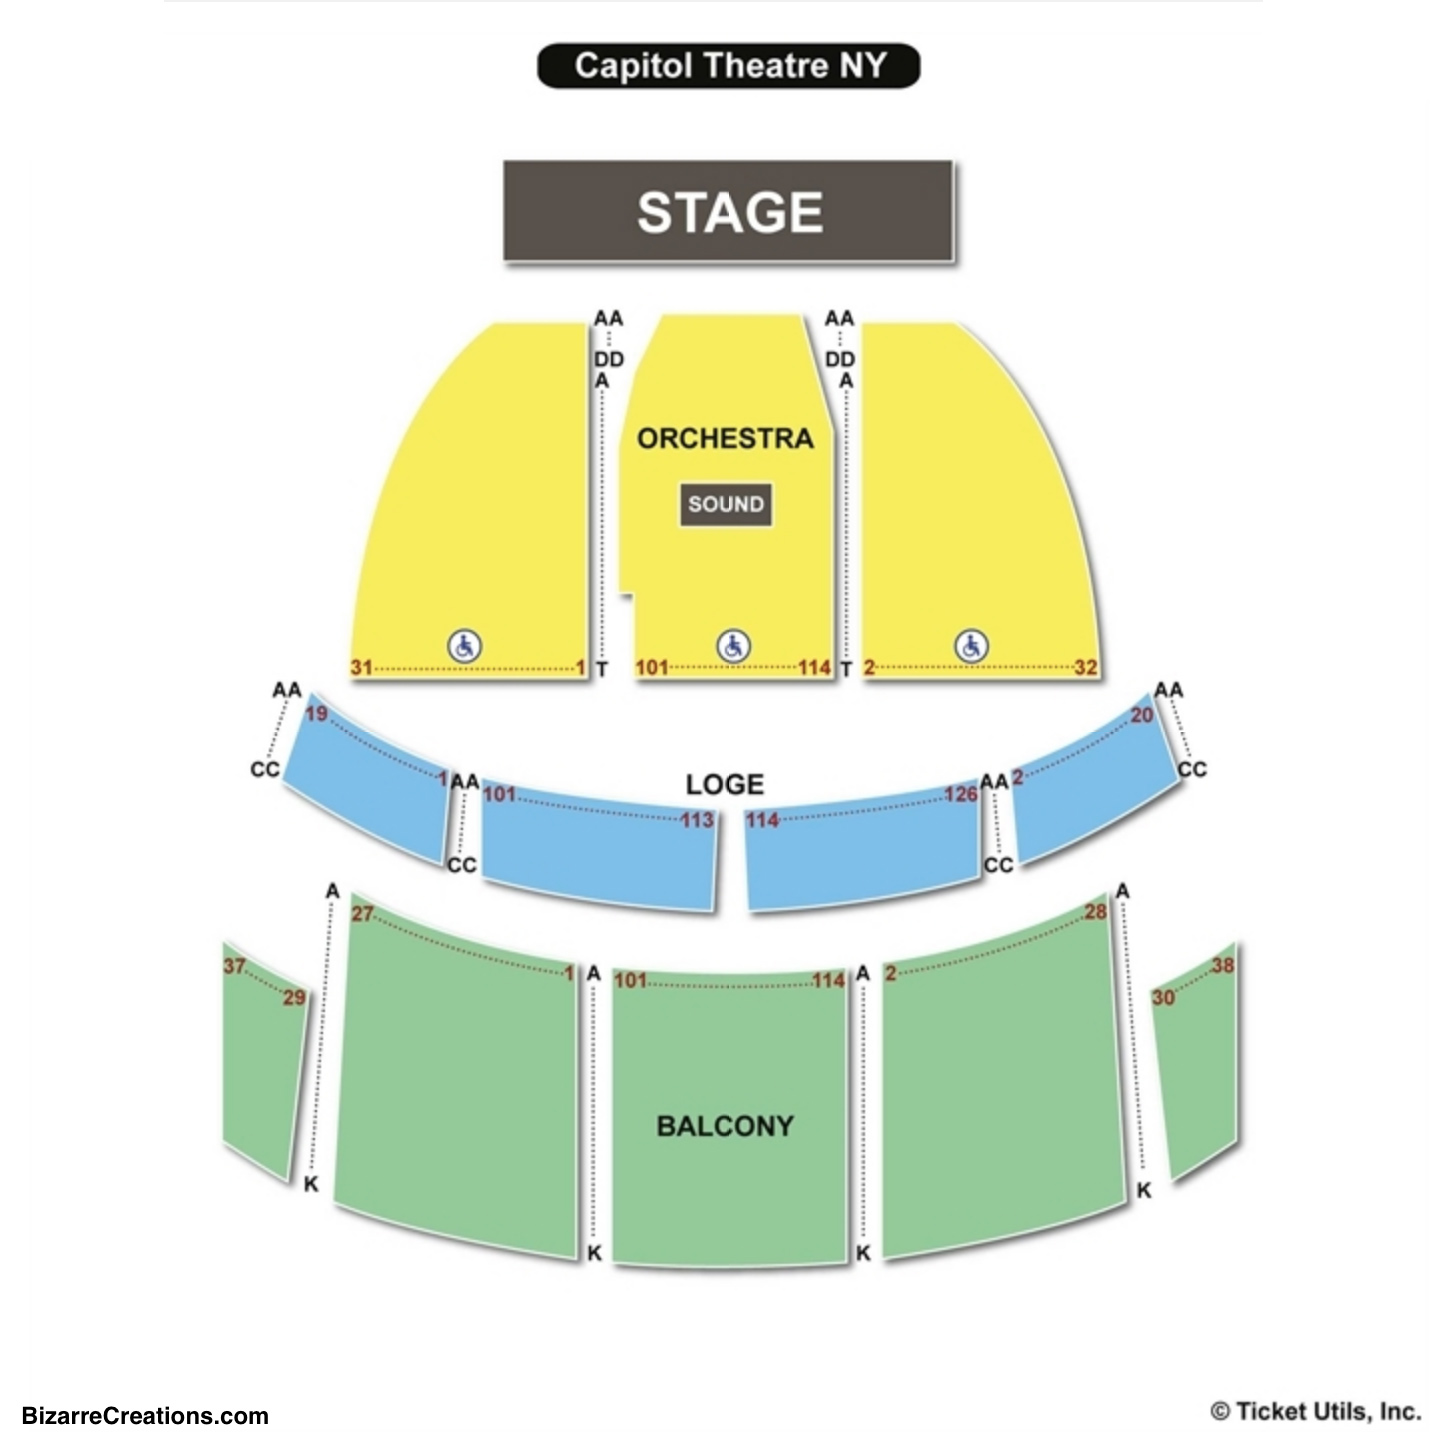 the capitol theatre port chester seating chart seating charts tickets. Black Bedroom Furniture Sets. Home Design Ideas